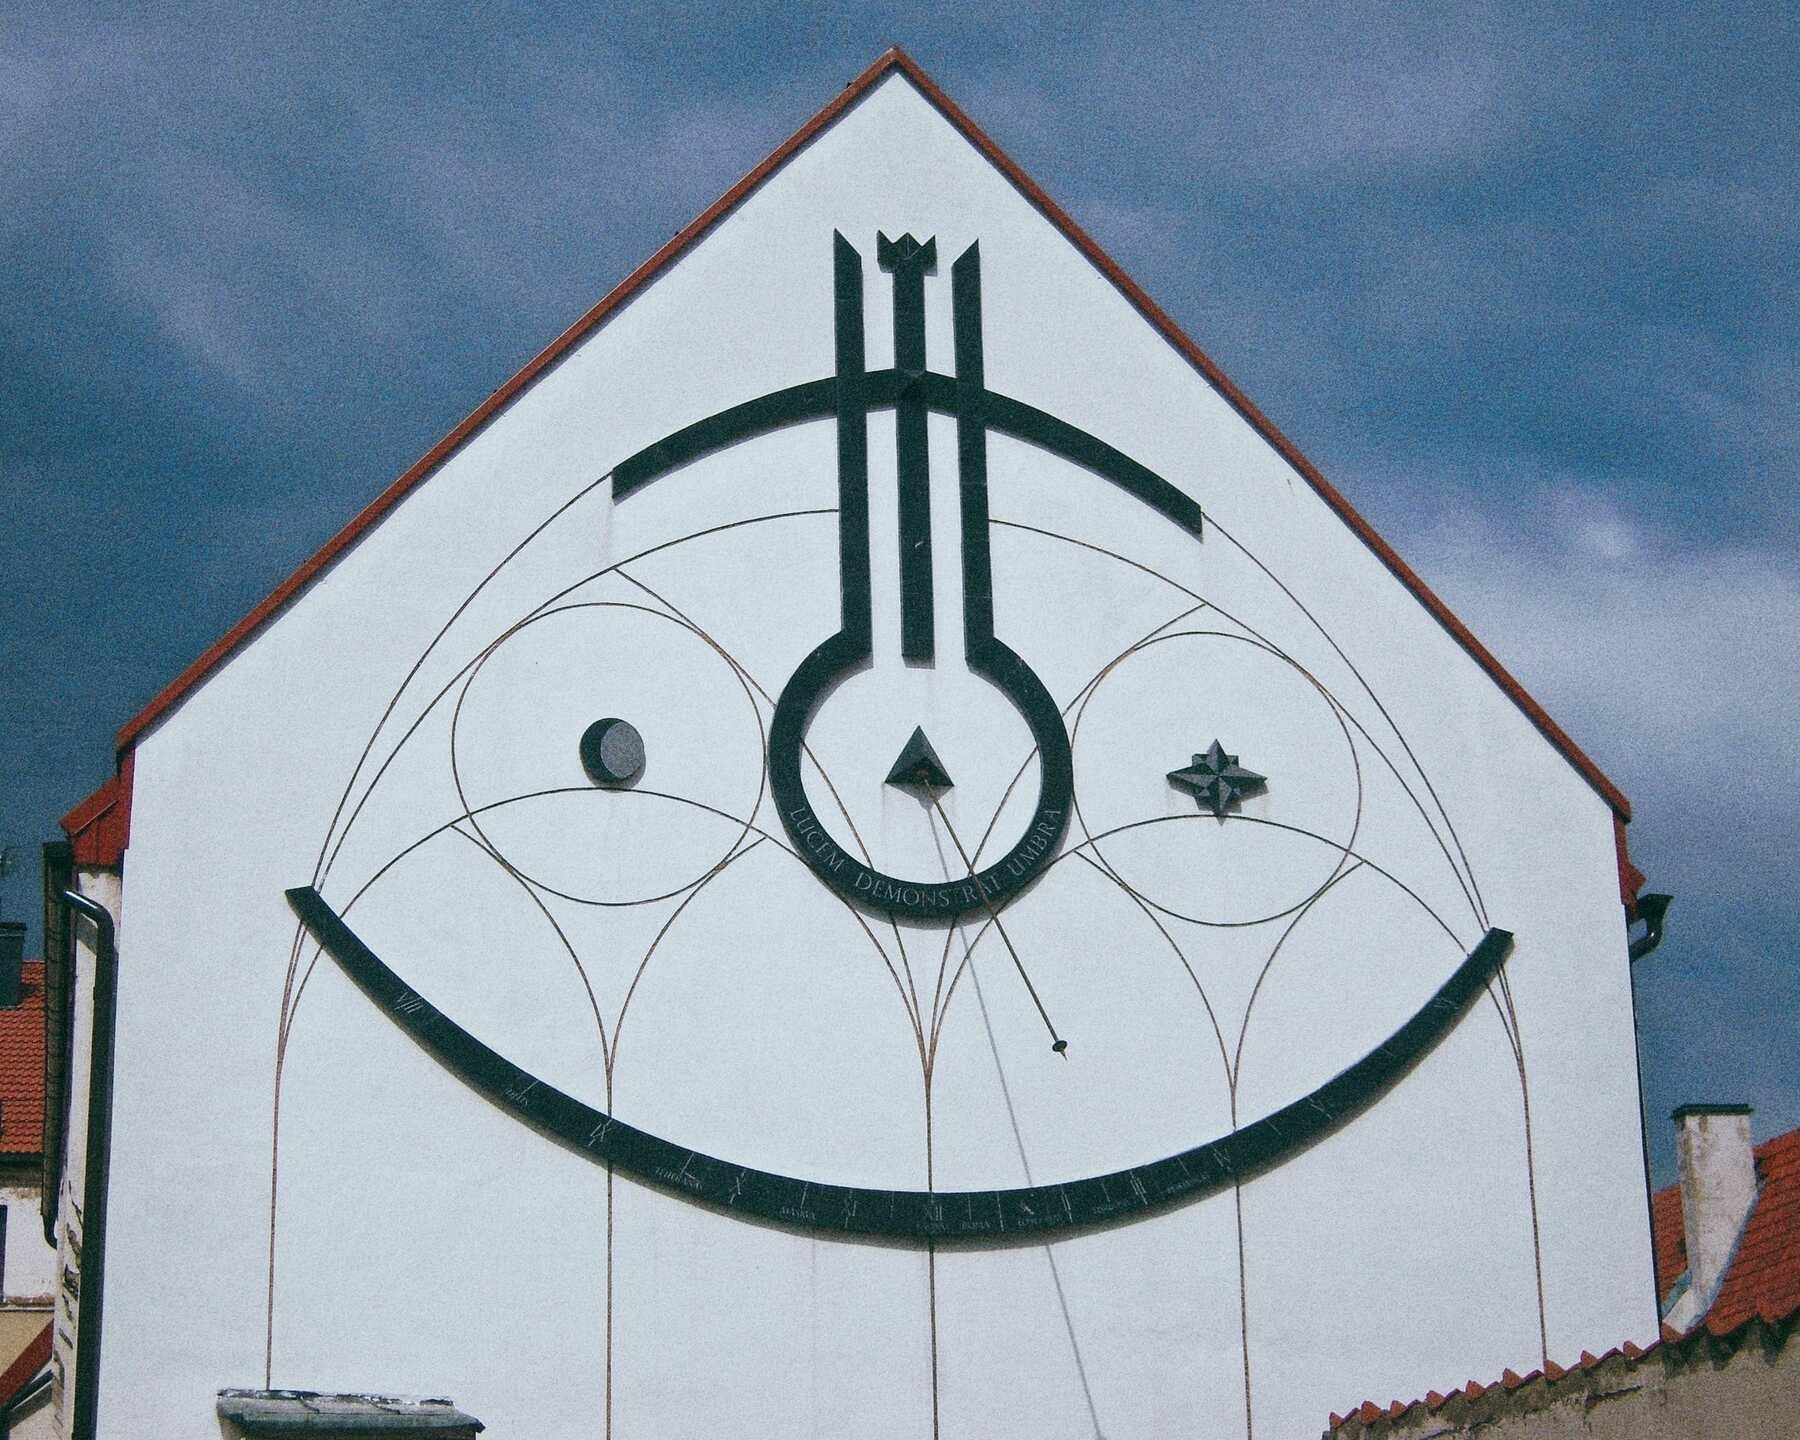 A large clock shaped to look like a face in Kaunus, Lithuania.